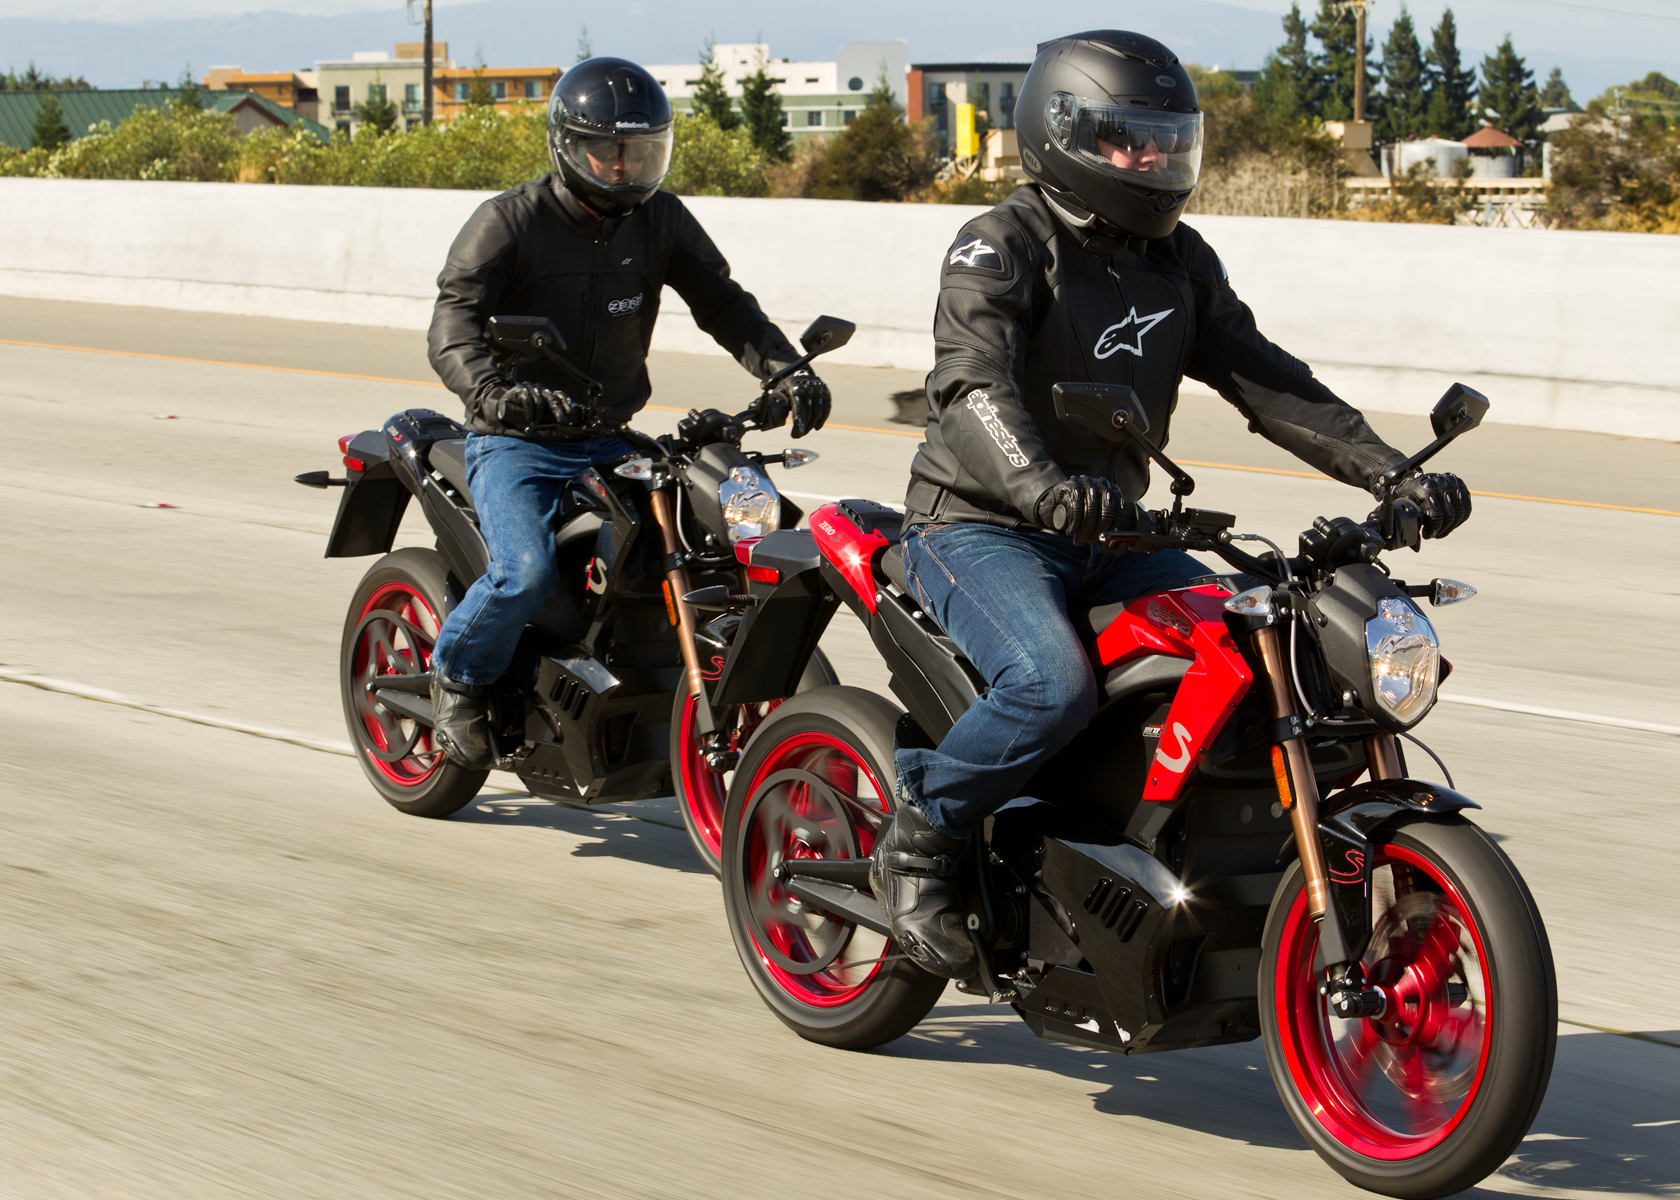 '.2012 Zero S Electric Motorcycle: Pair, Cruising in the City.'